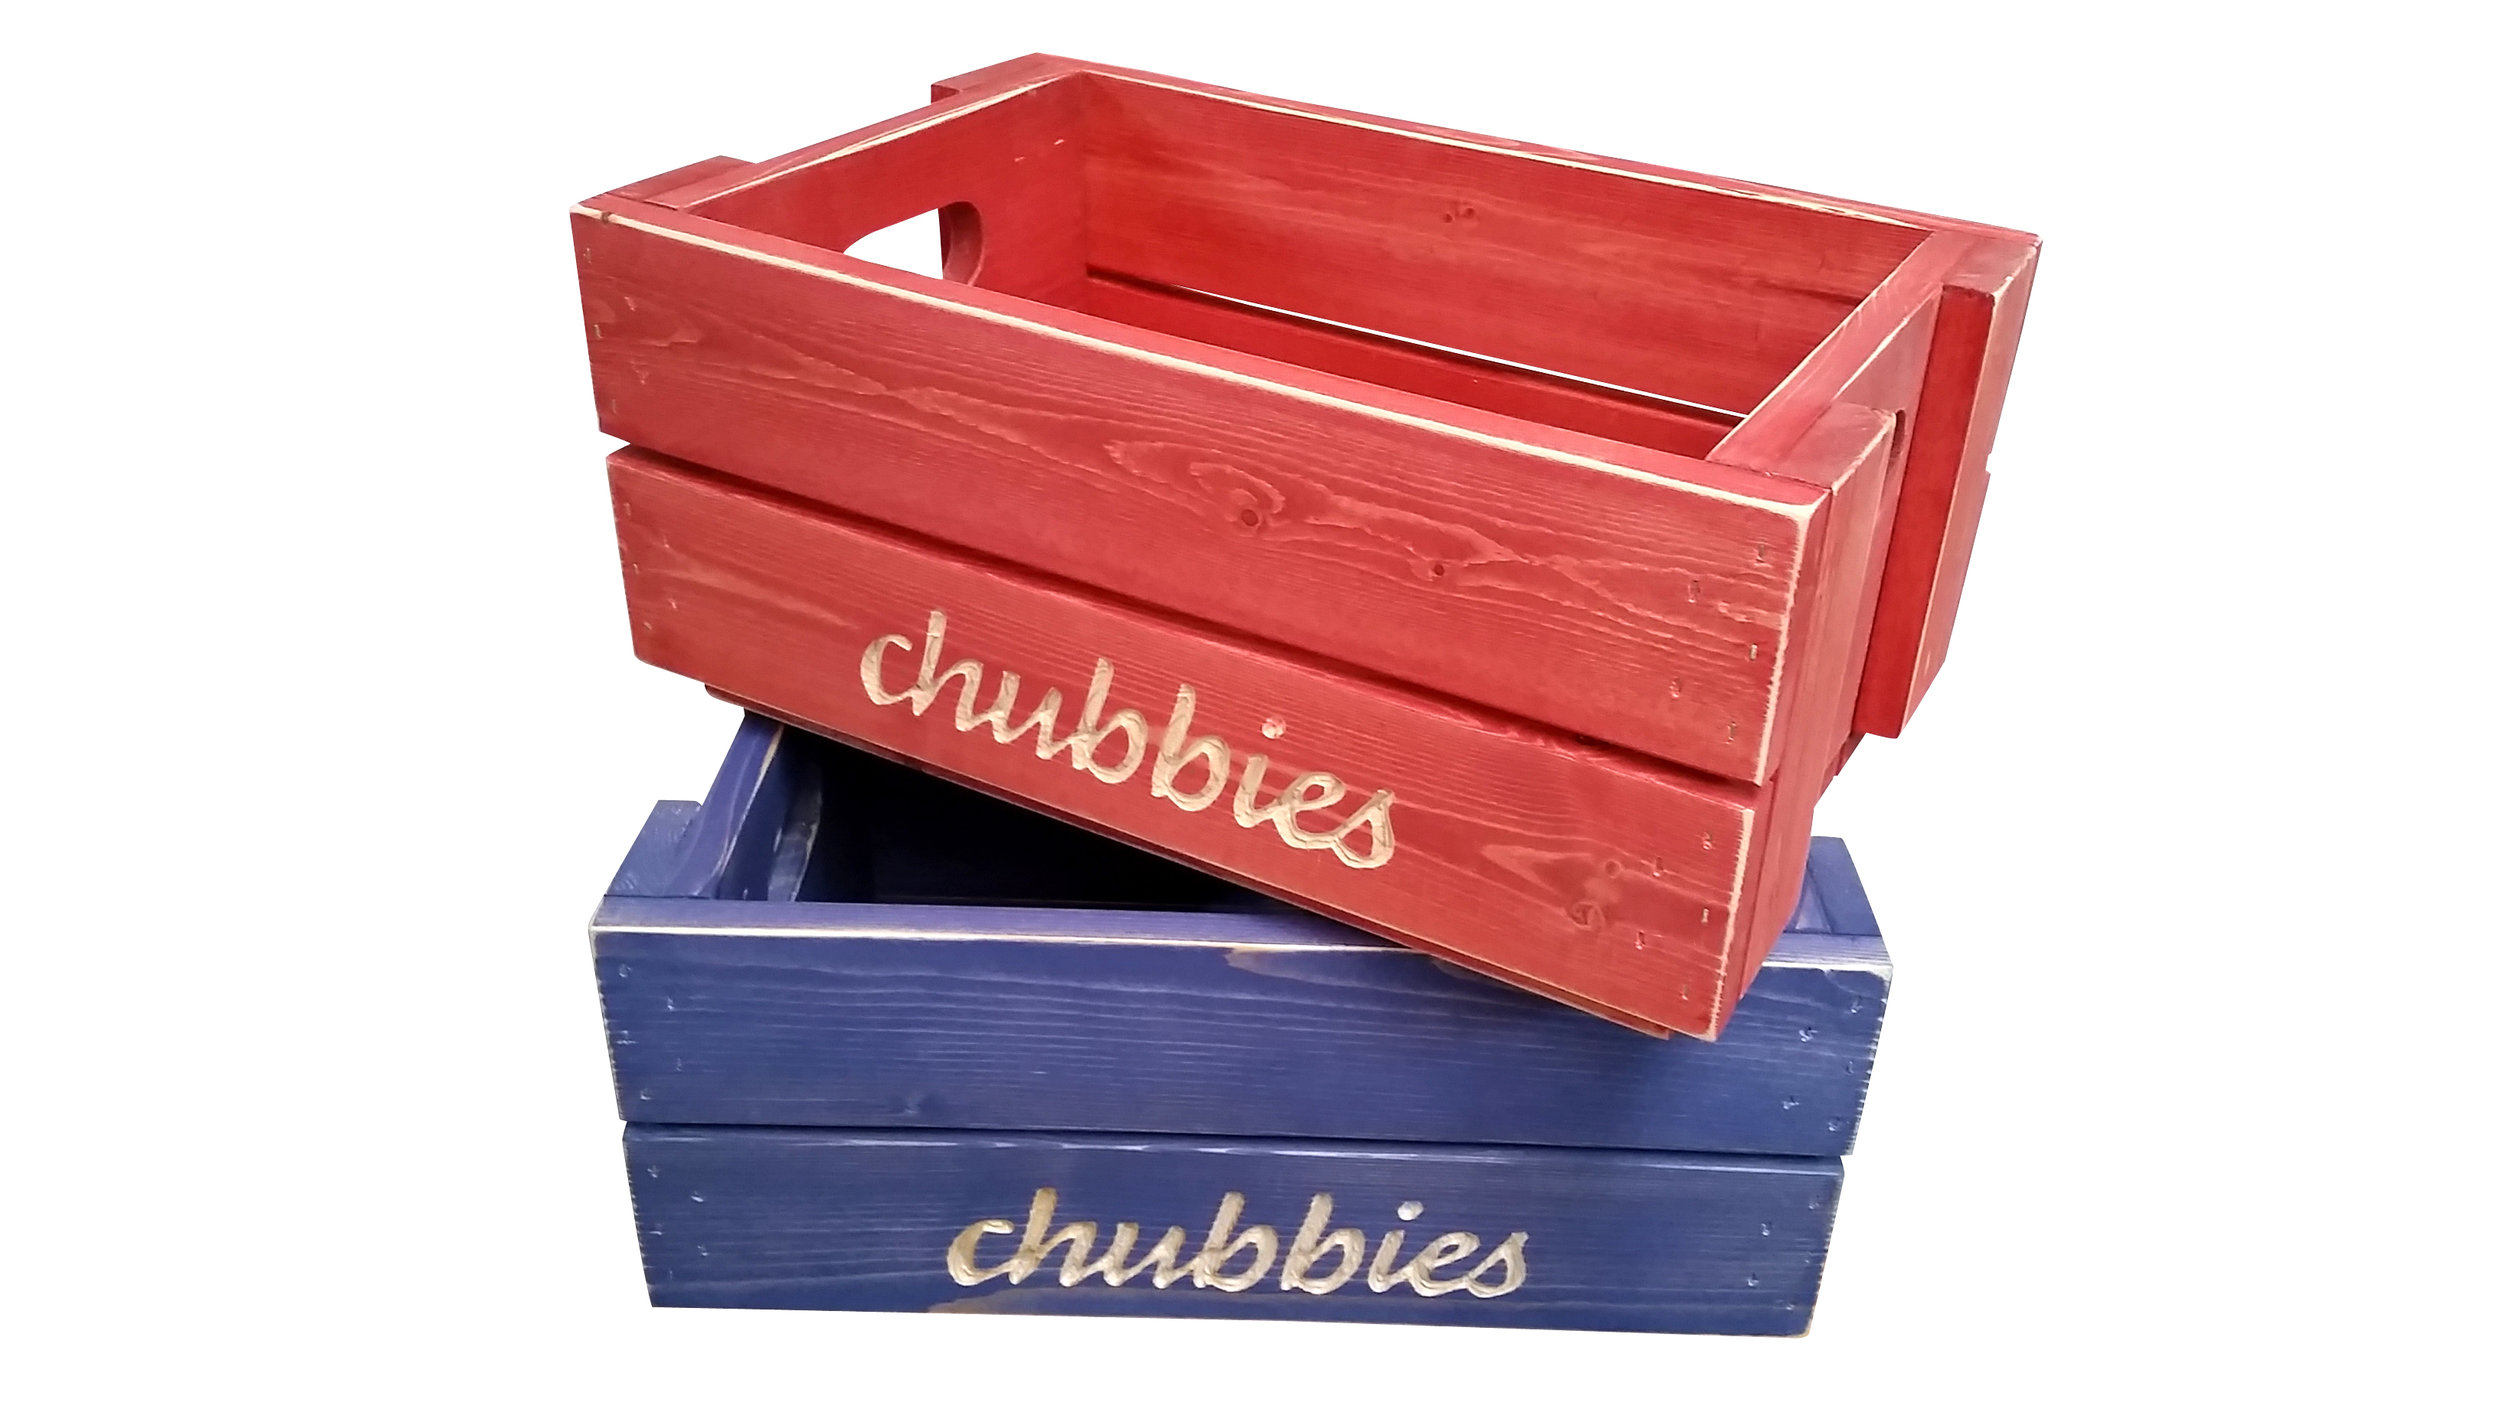 chubbies, asheville crate company, custom crates, asheville crate co.